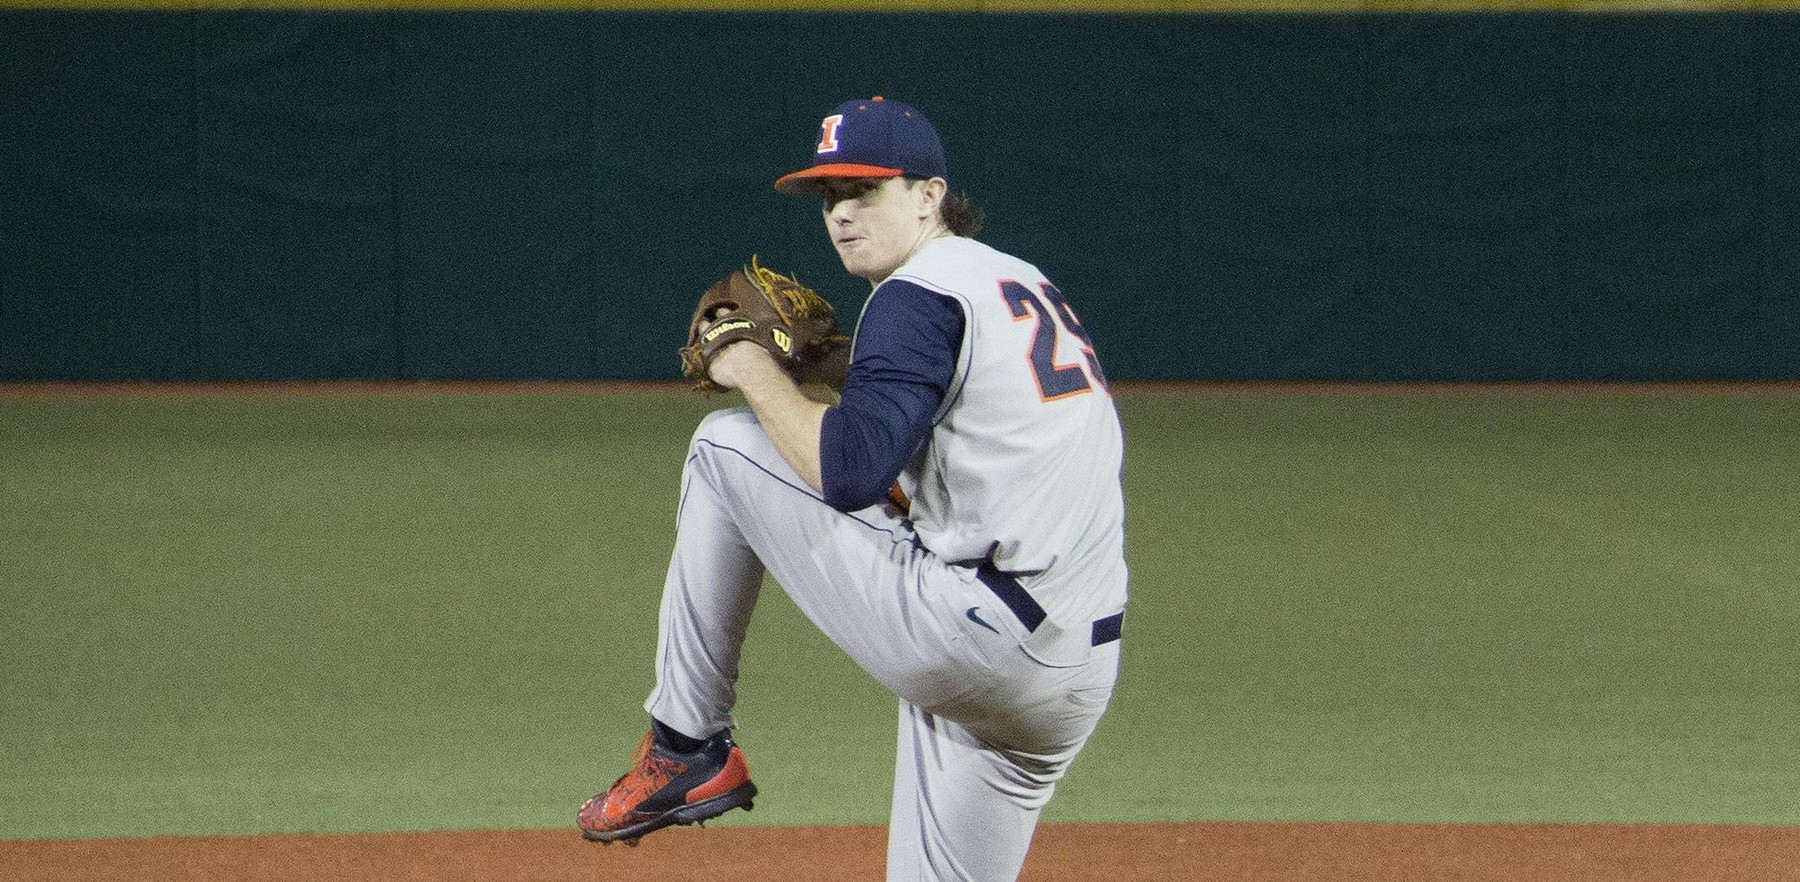 image of Illini pitcher Cody Sedlock in his wind-up